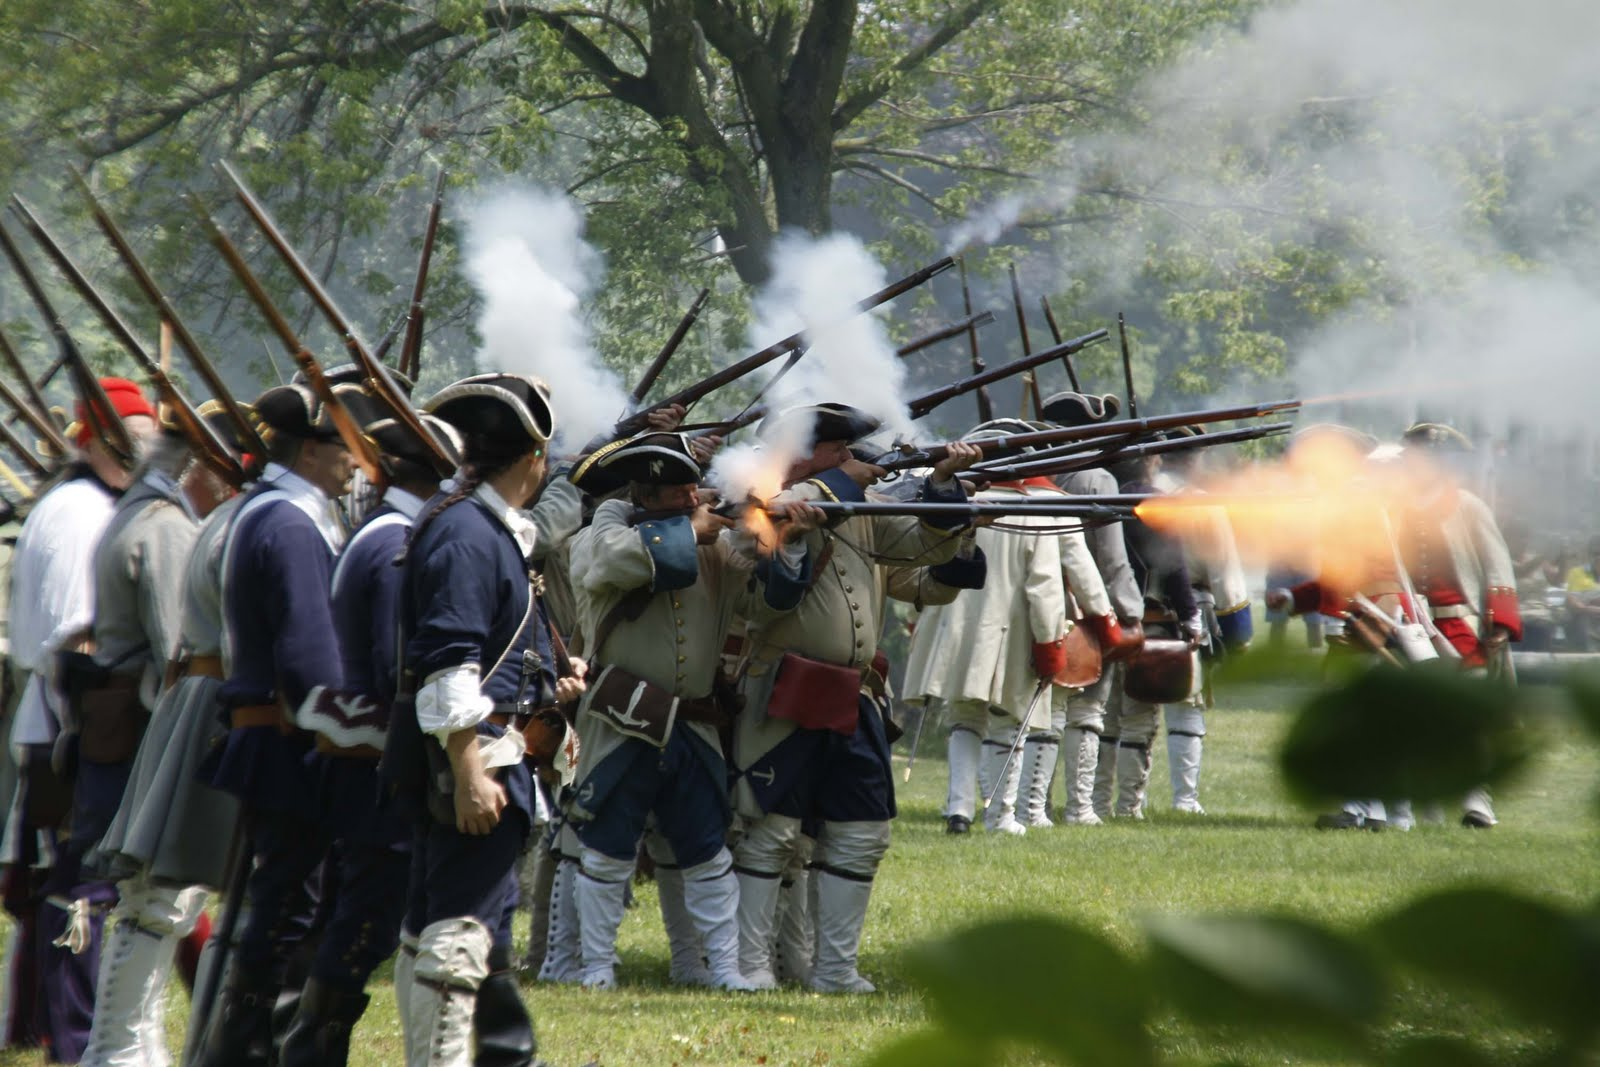 Ogdensburg Founder's Day Weekend July 23-24 - The New York